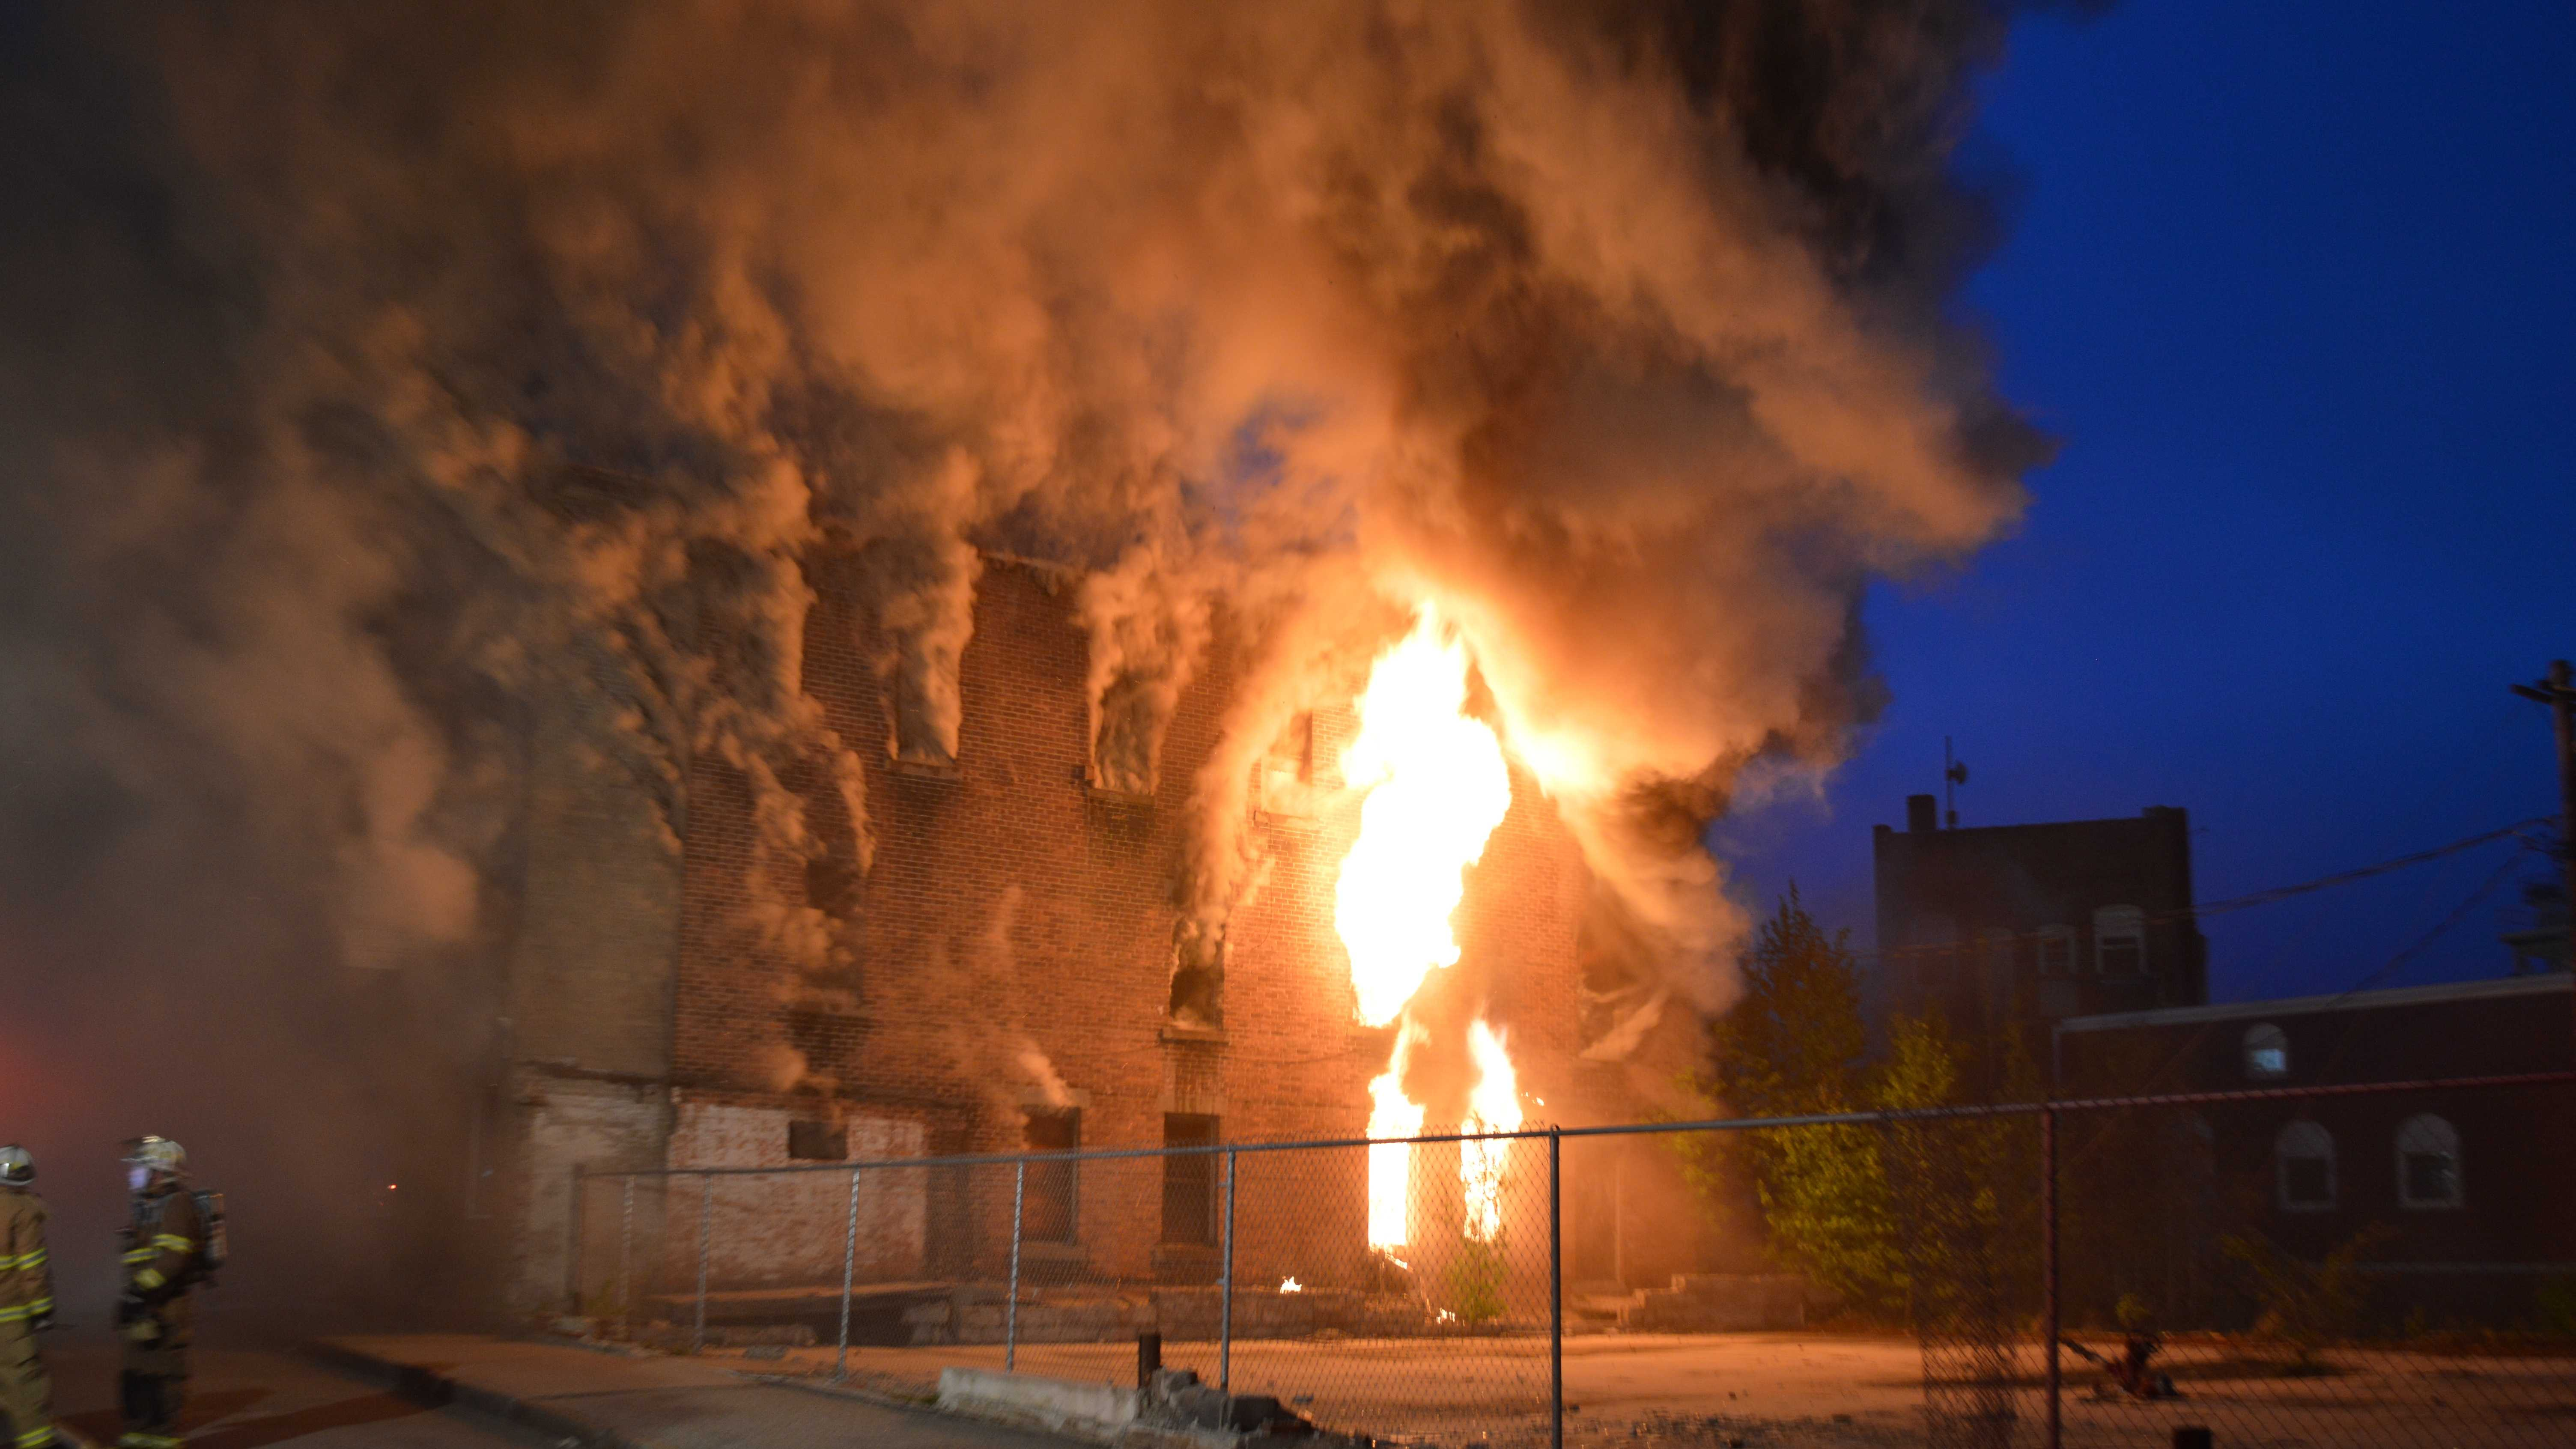 Fire destroyed a vacant building in Berlin early Sunday morning.